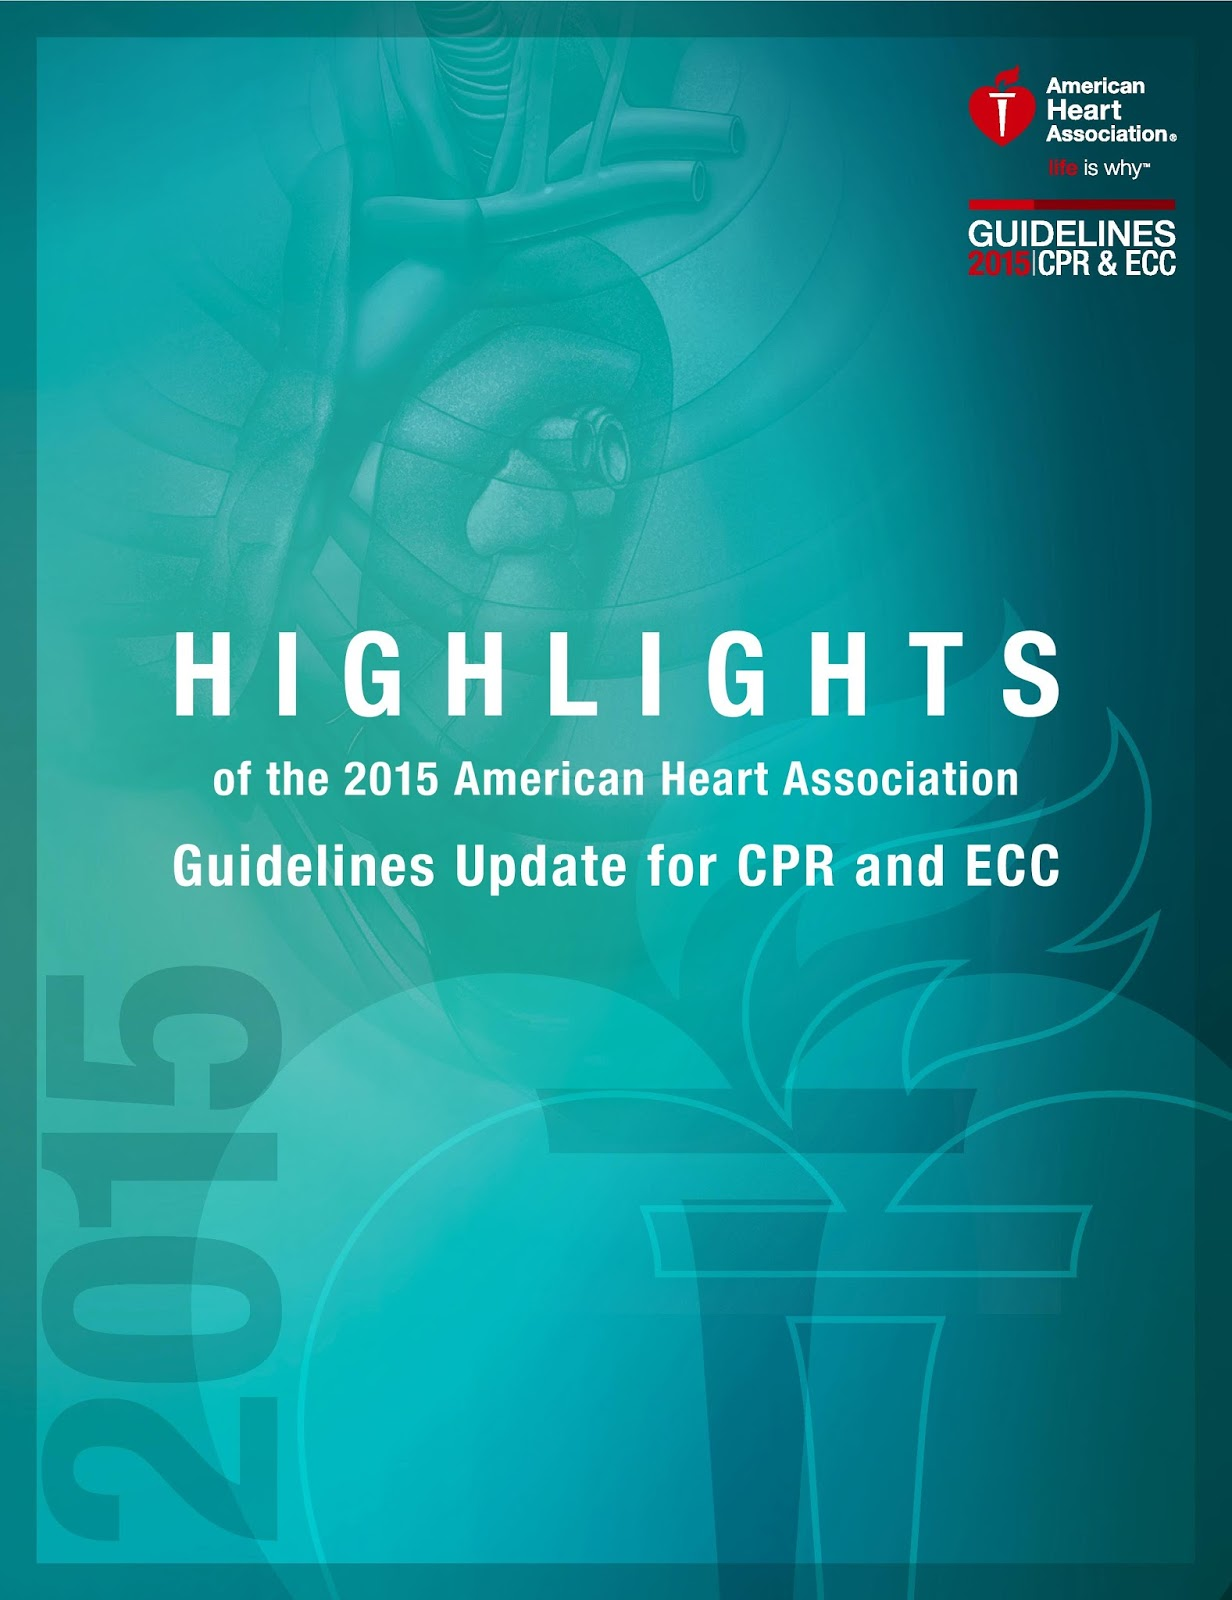 What are some American Heart Association guidelines for CPR?